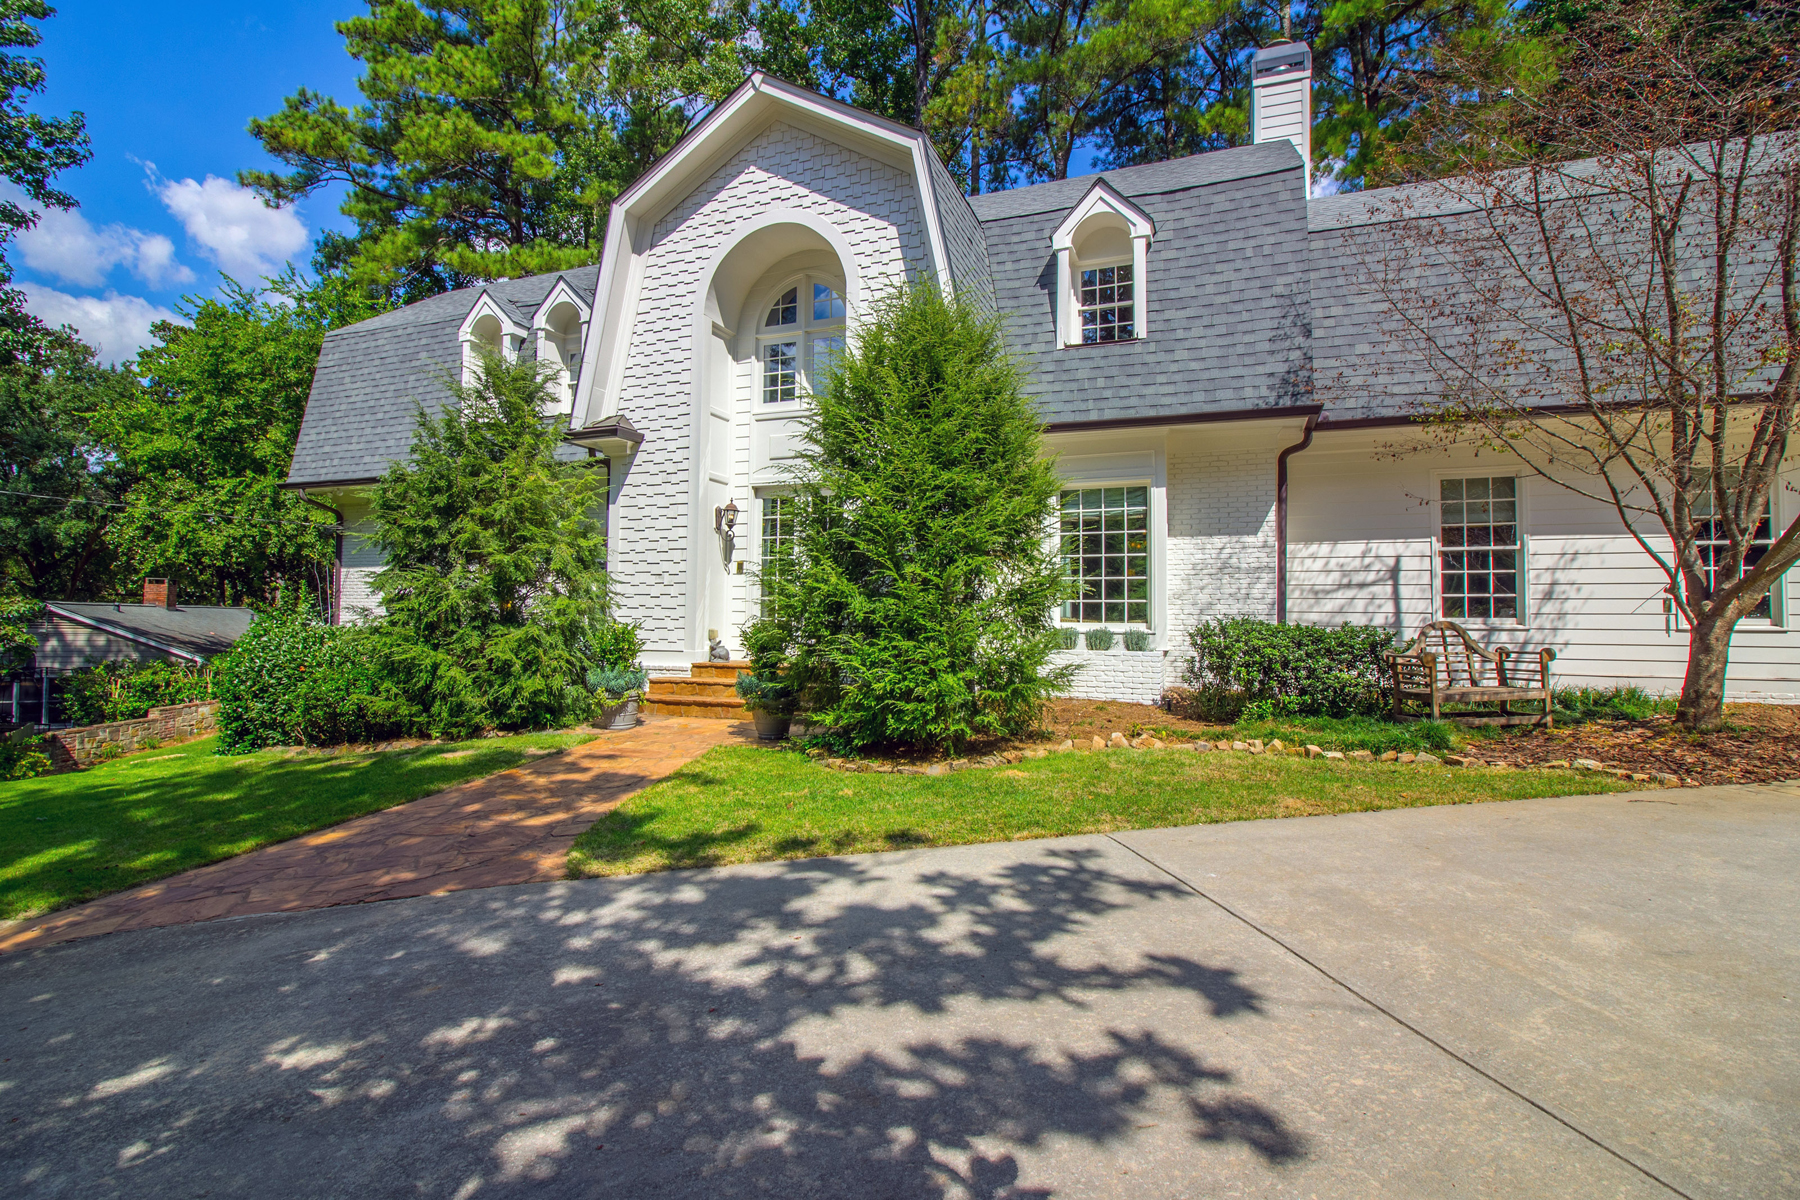 Частный односемейный дом для того Продажа на Large Open Concept Home In One Of Buckhead's Best Neighborhoods 3115 E Wood Valley Road NW Atlanta, Джорджия 30327 Соединенные Штаты